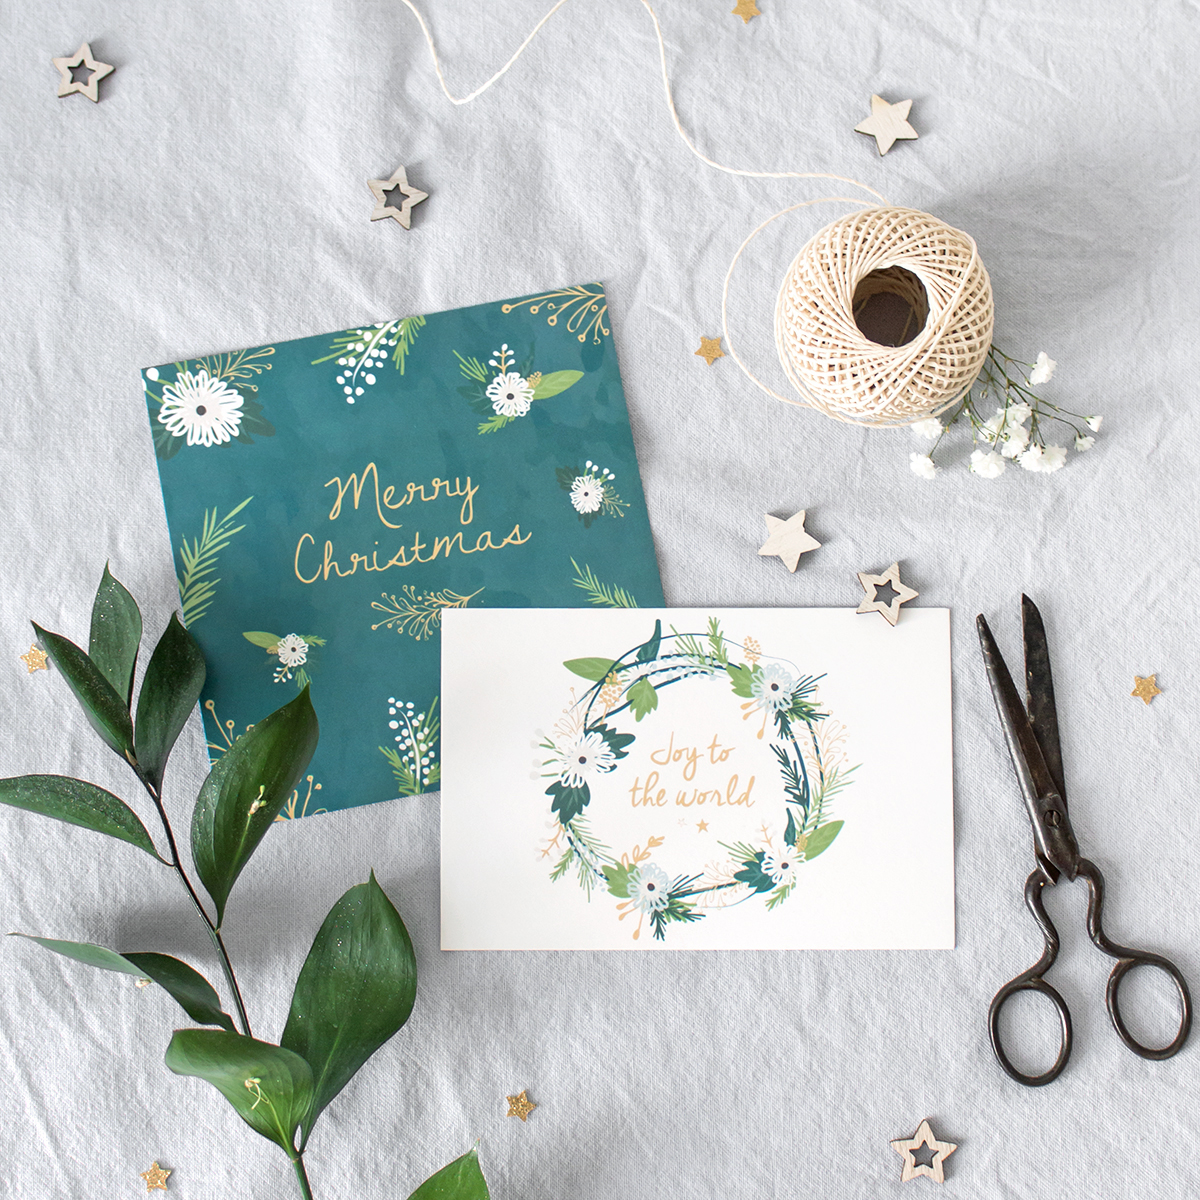 Christmas Cards - Papeterie - Illustration - Charlène Roudier